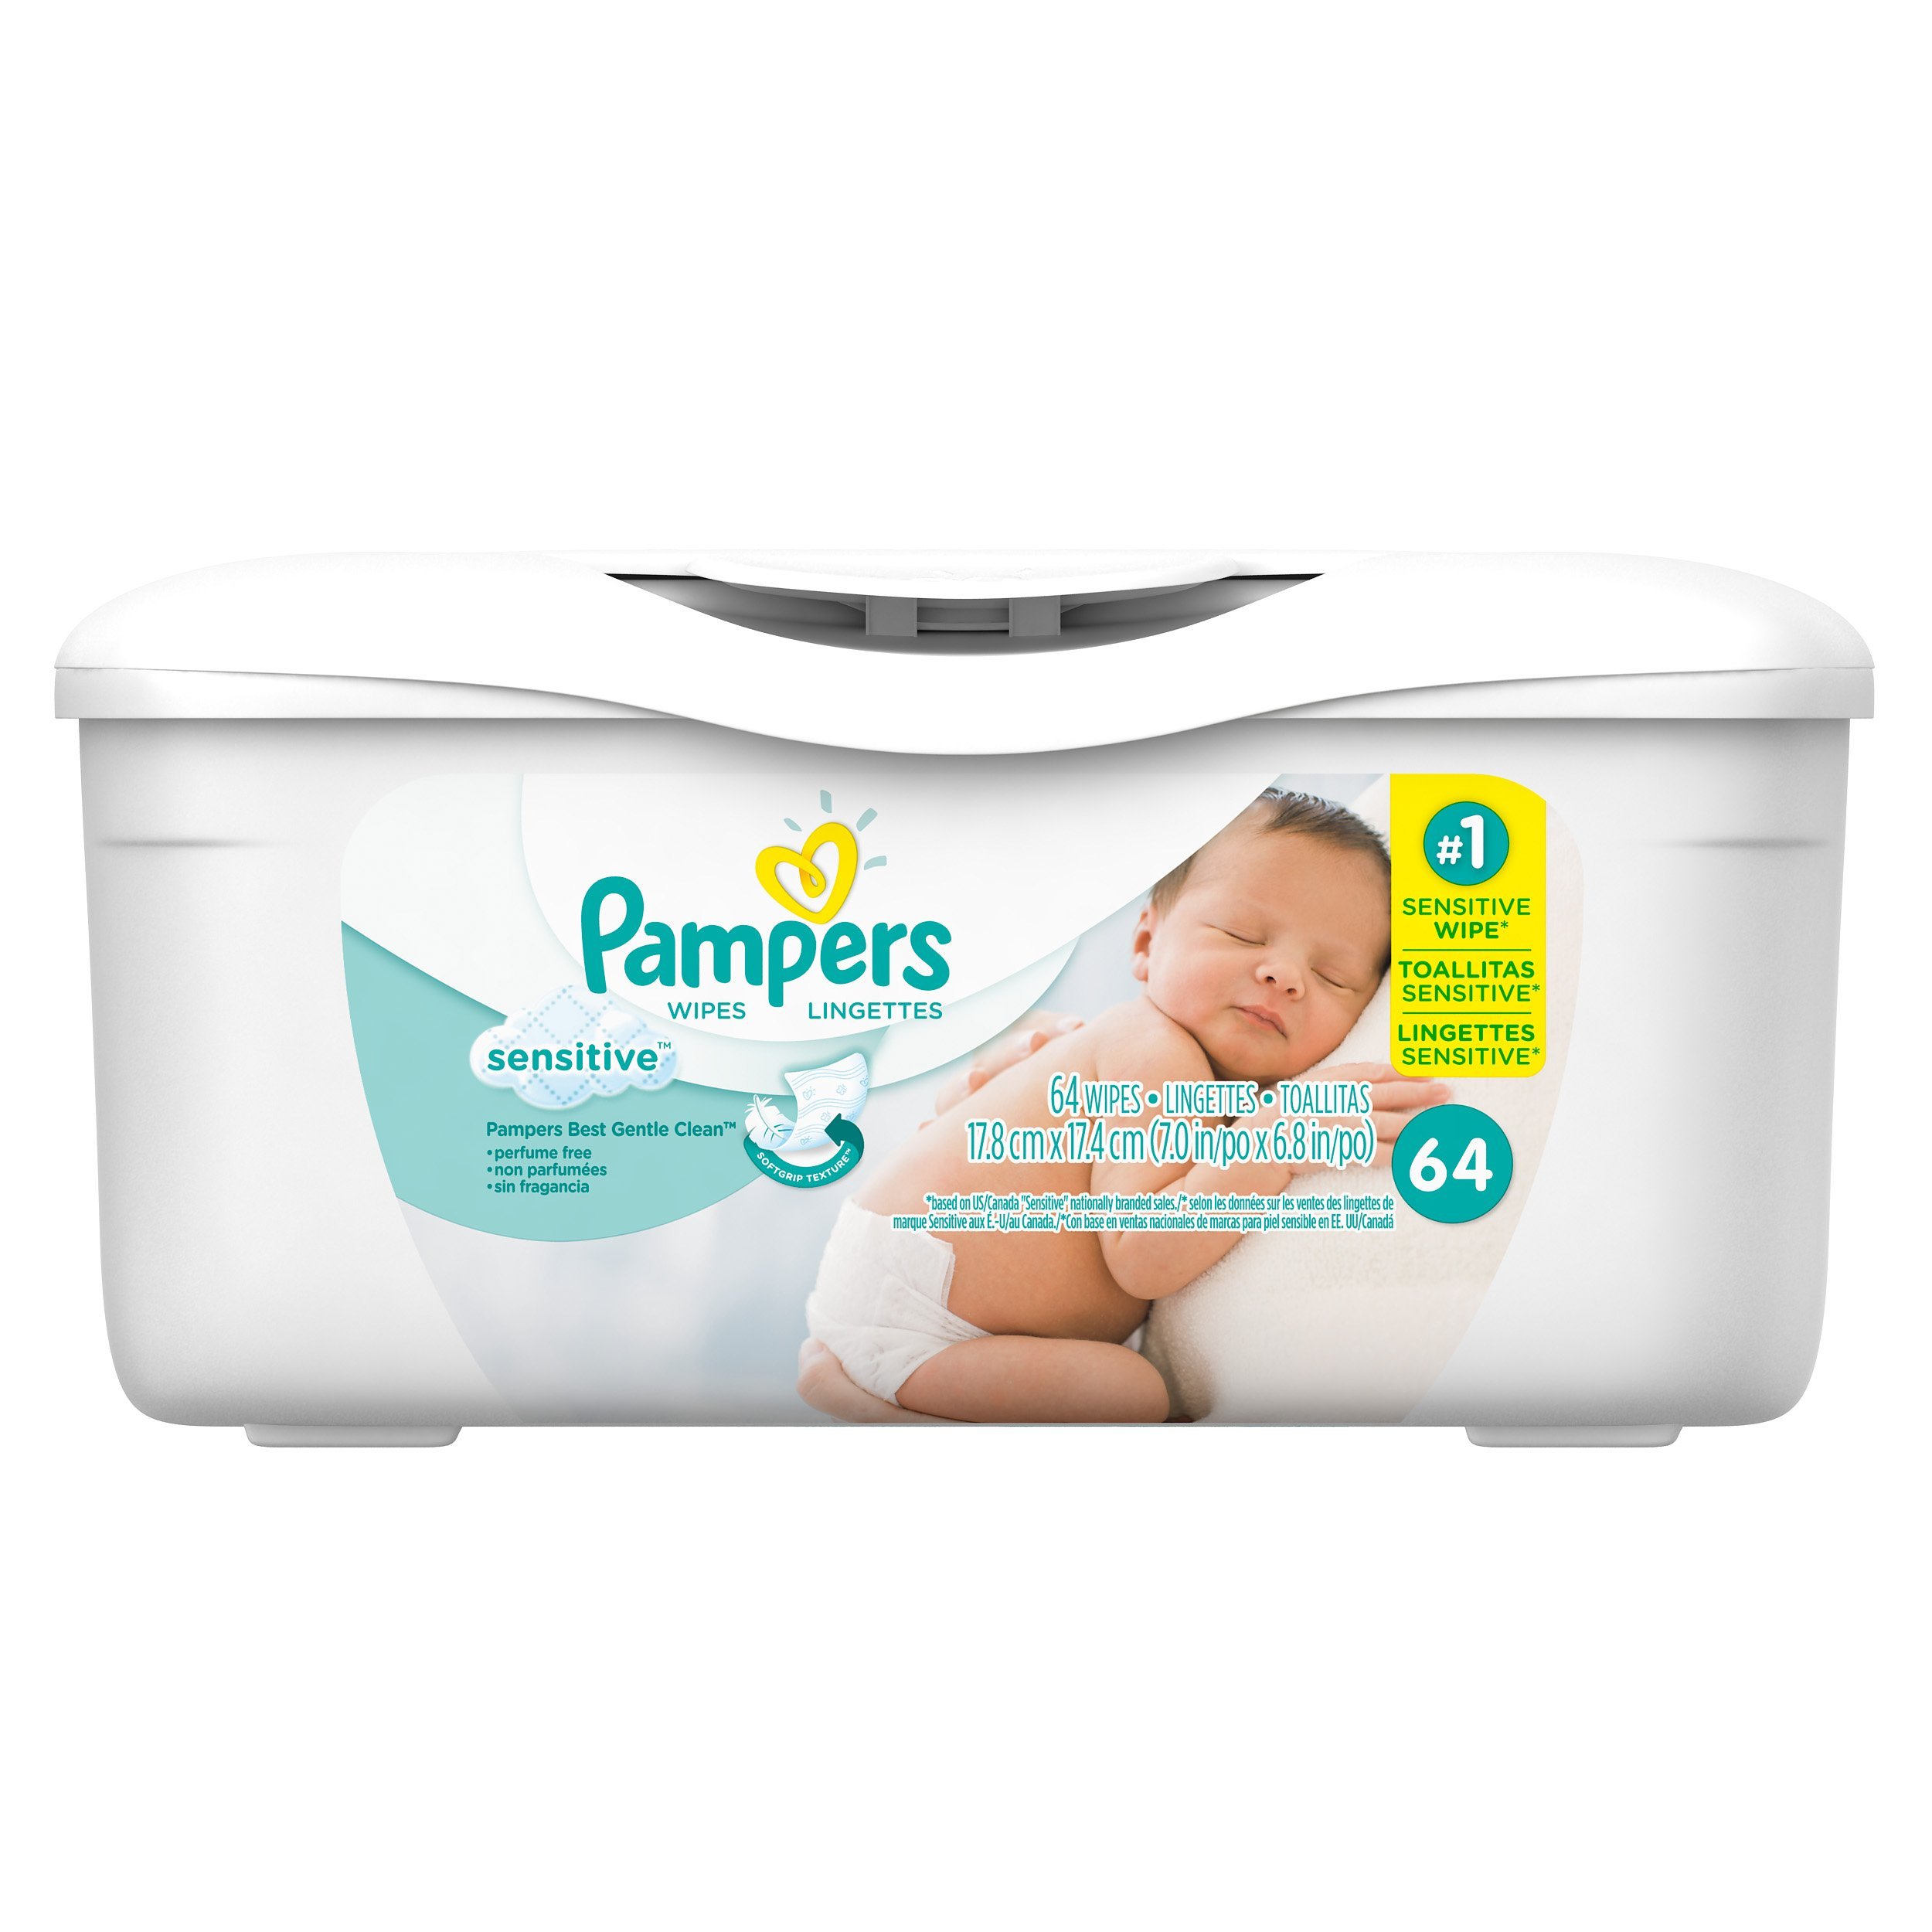 Pampers Sensitive Water Baby Wipes Tub, 64 Count, Pack of 8